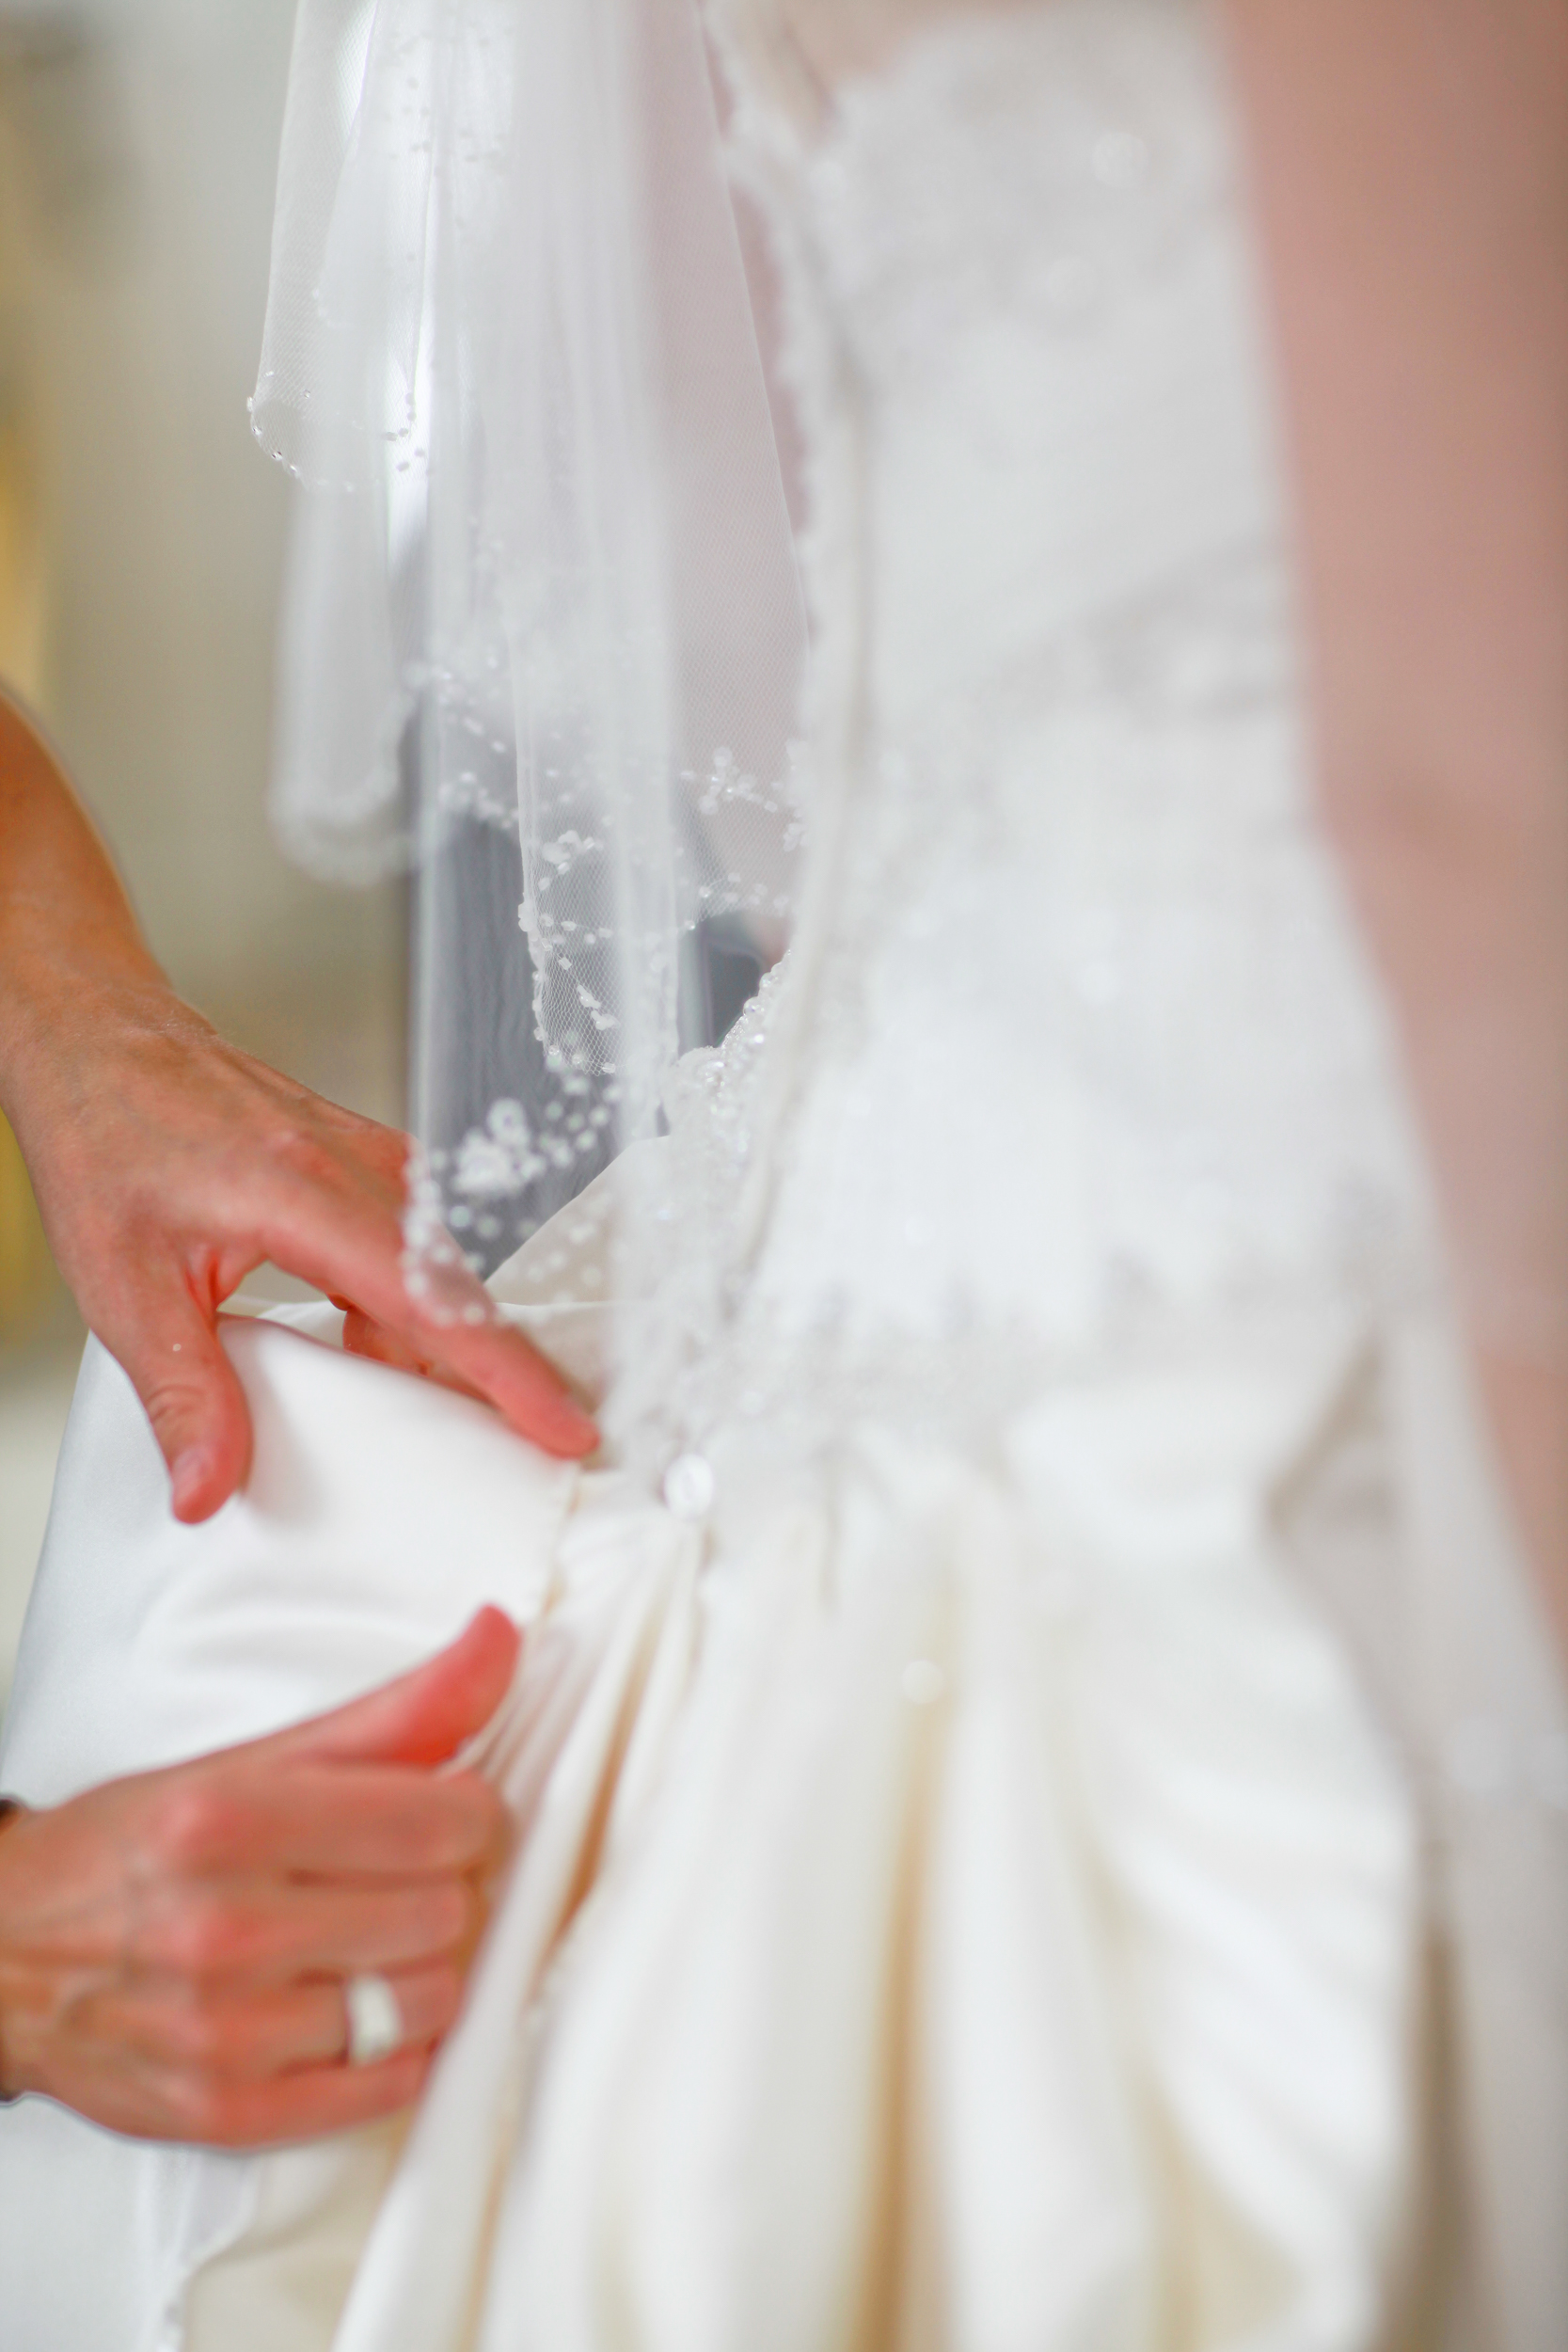 Mother fixing dress before wedding